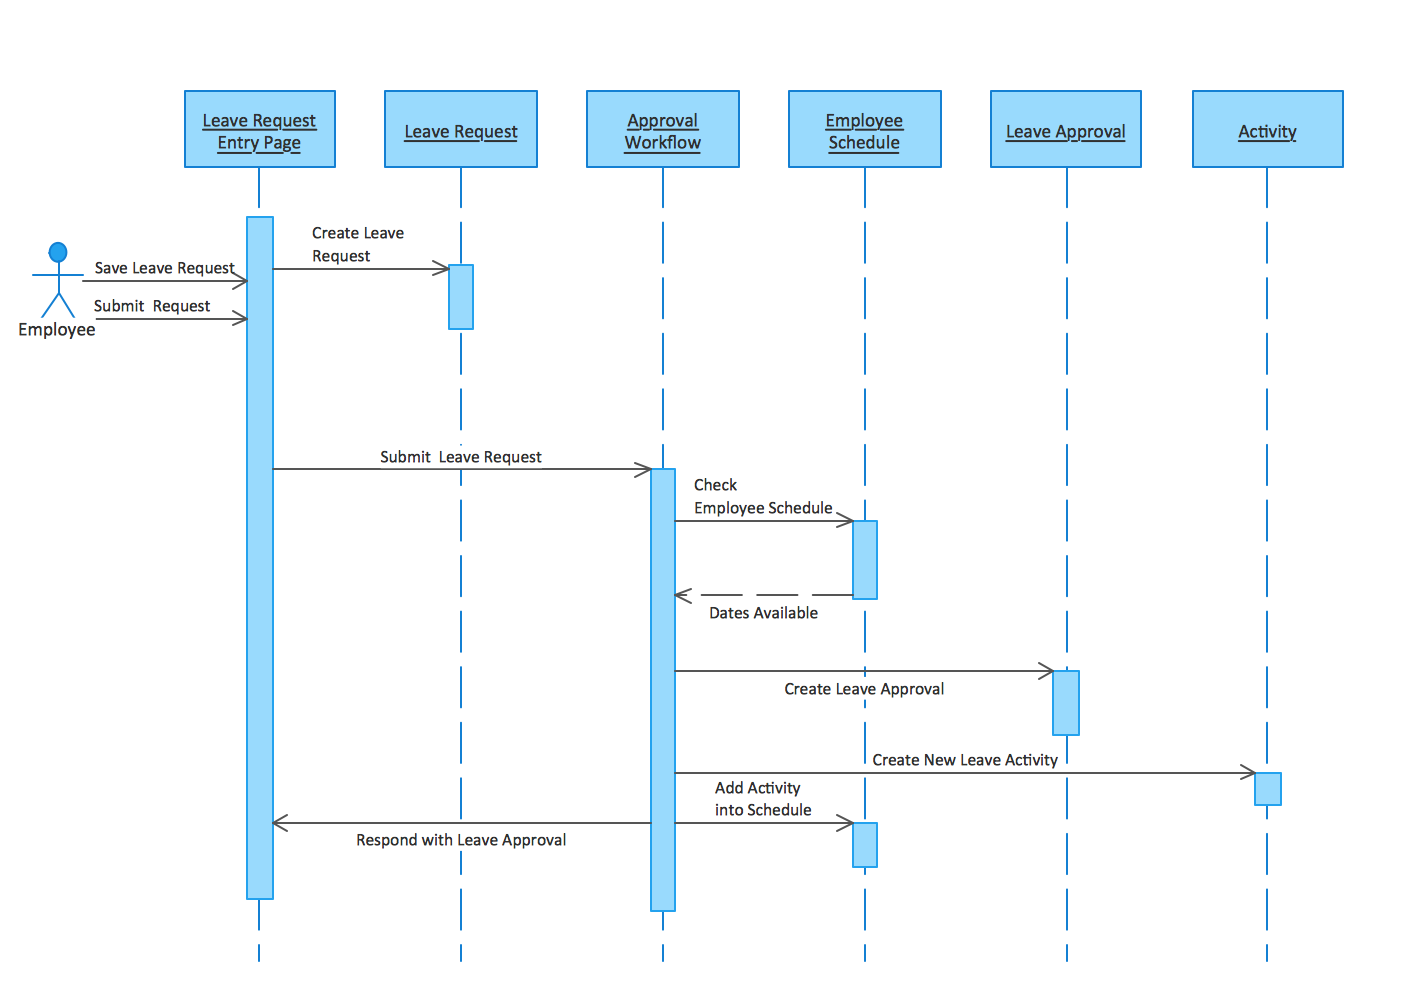 ACTIVITY DIAGRAM FOR ONLINE SHOPPING